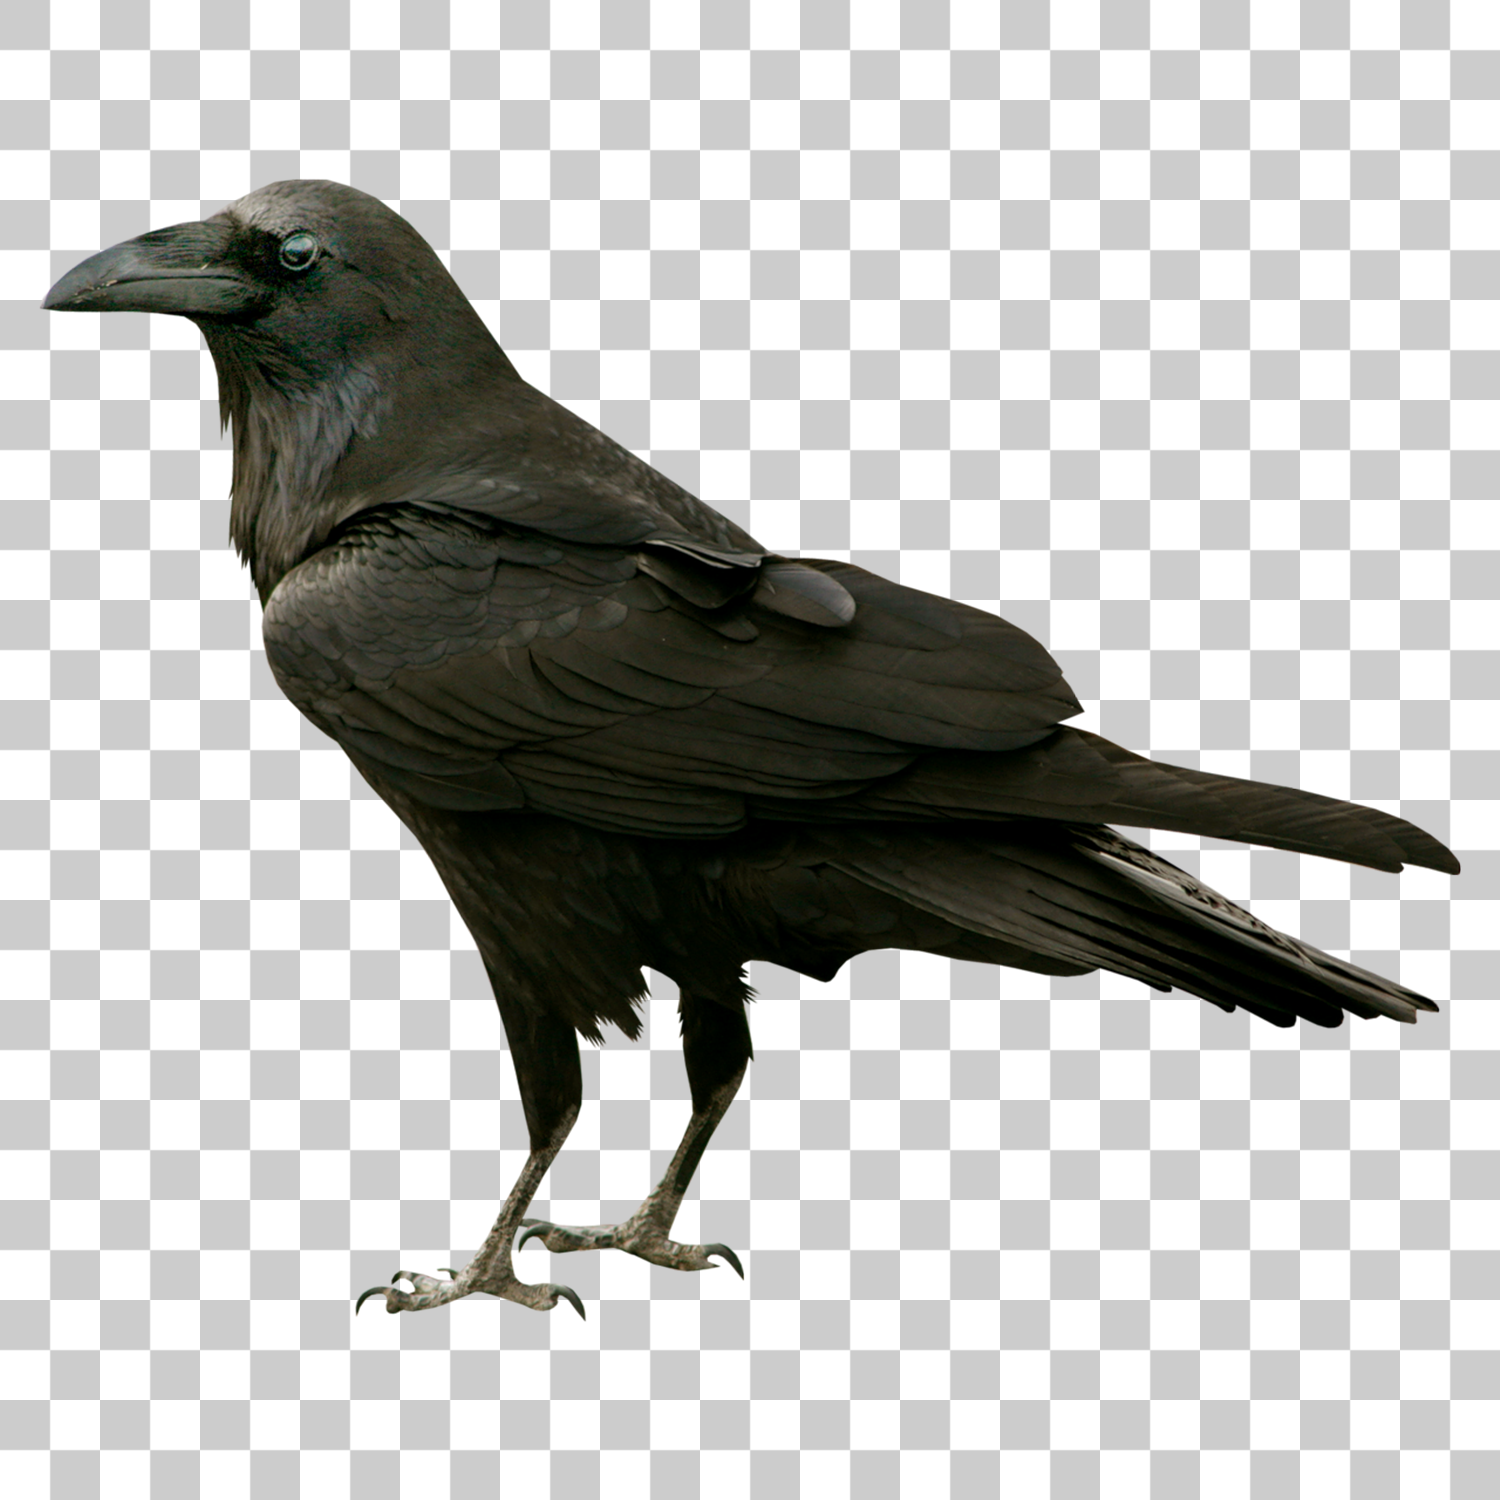 Crow Bird Png Image With Transparent Background Png Images Stock Images Free Image